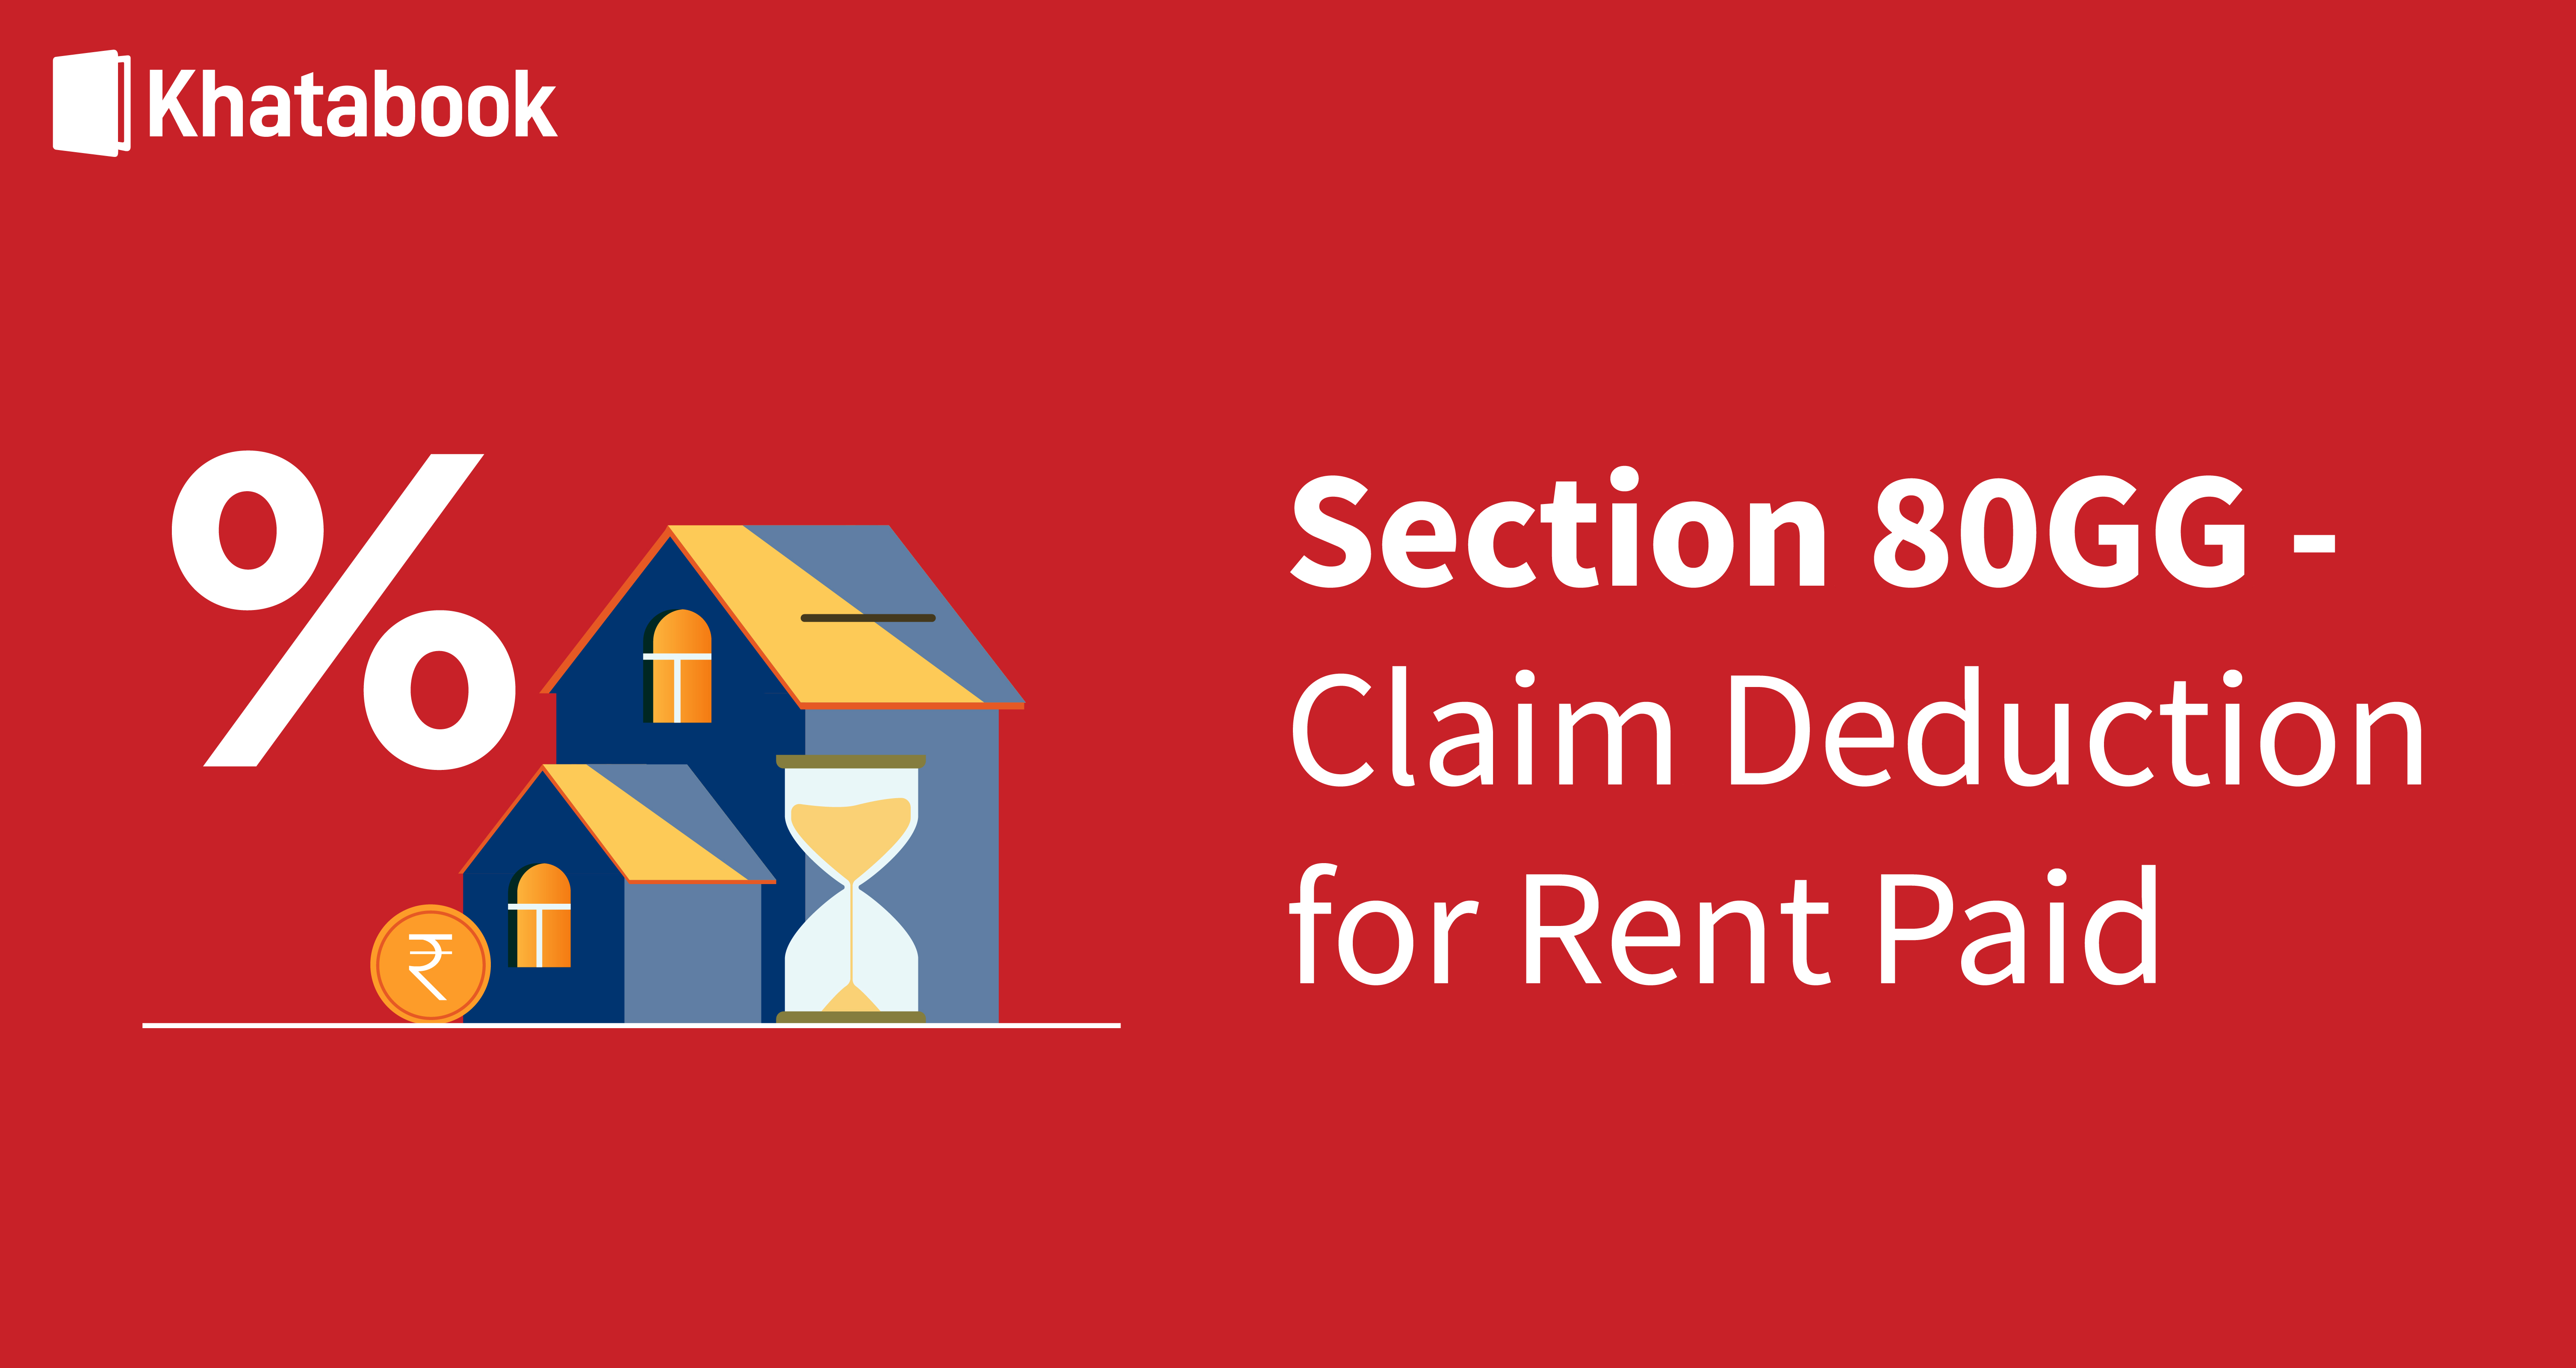 All About Section 80GG Denoting Claim Deduction for Rent Paid